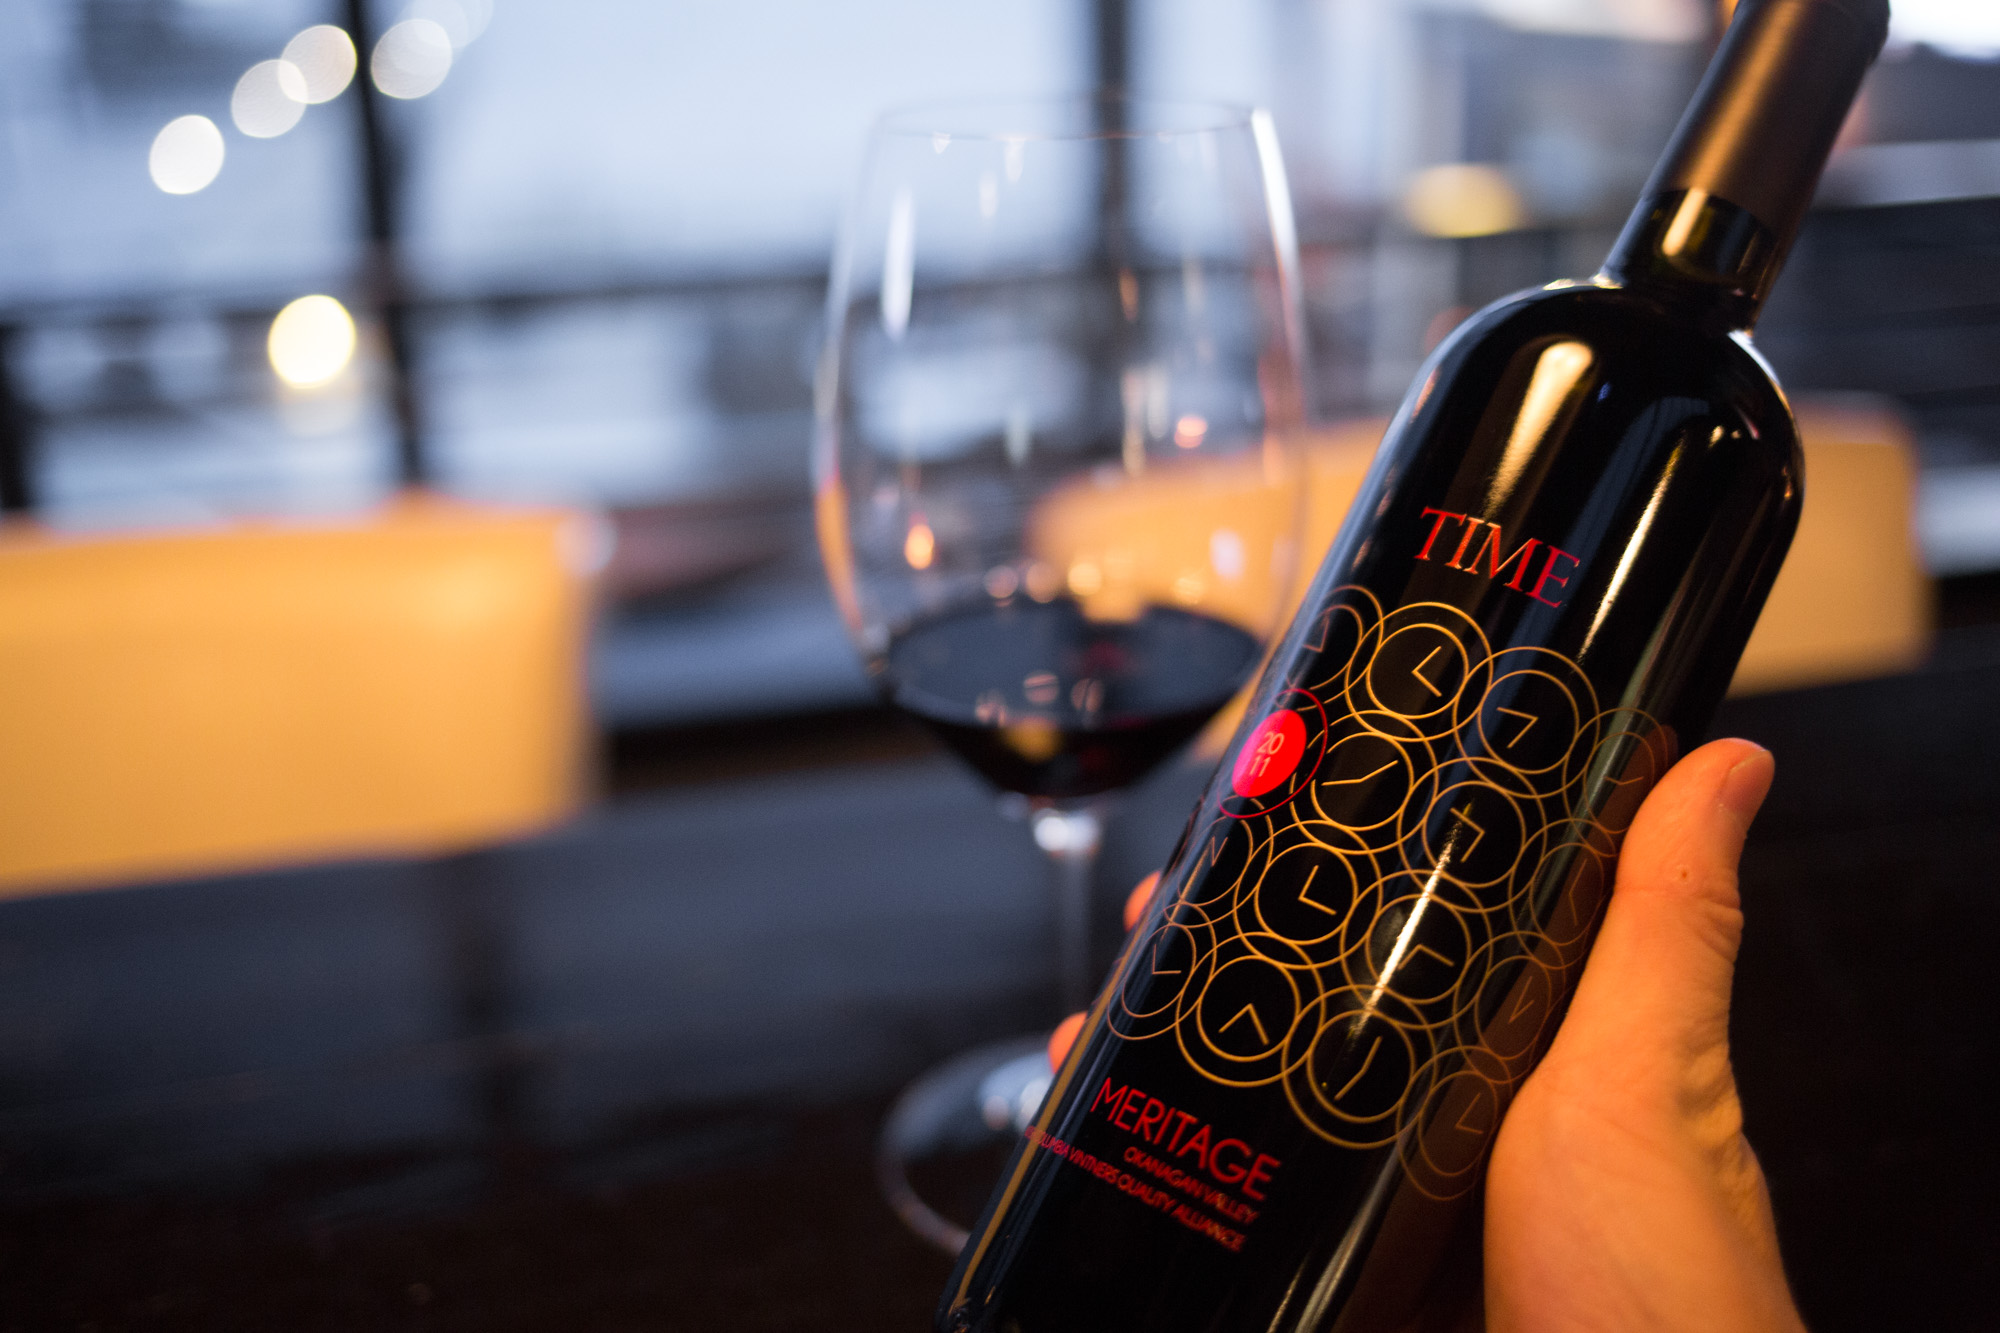 TIME Winery is known for its Meritage: Chris Stenberg photo